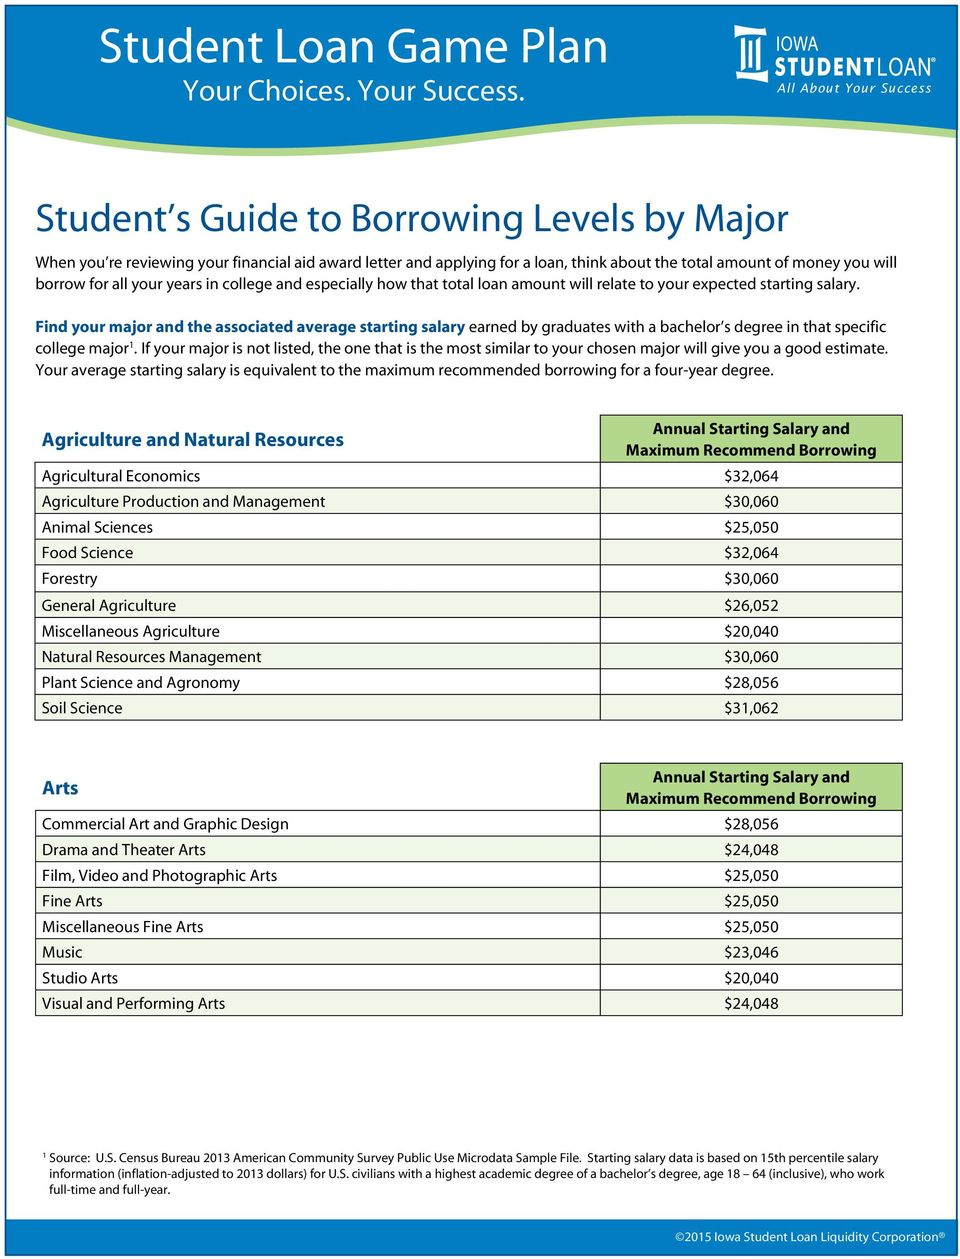 borrow for all your years in college and especially how that total loan amount will relate to your expected starting salary.